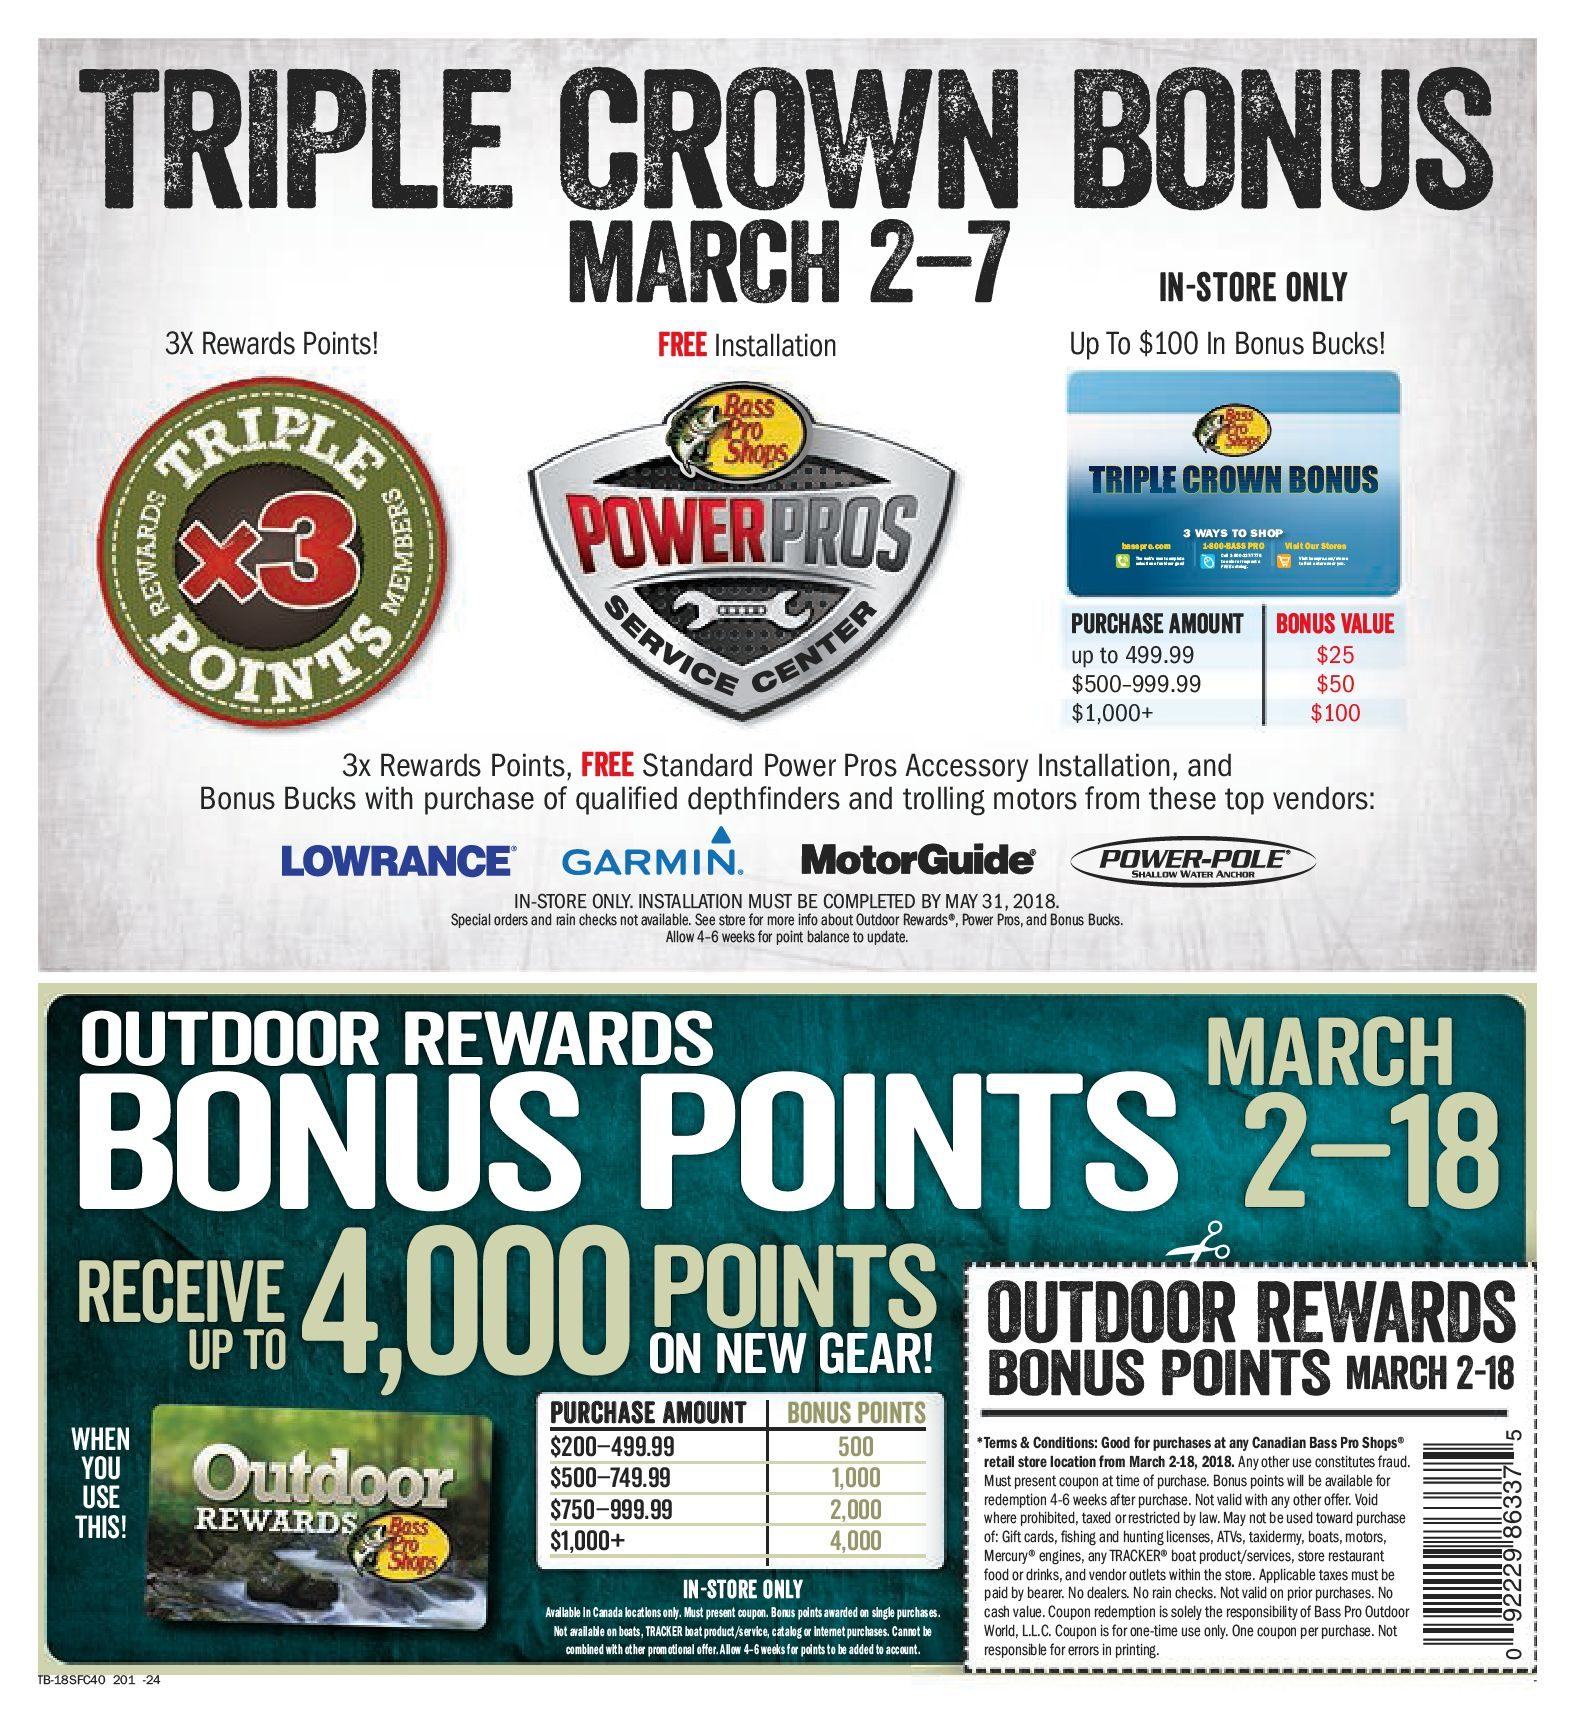 Bass Pro Shops Weekly Flyer Vaughan 2018 Spring Fishing Classic Motorguide Mg 28 Wiring Diagram Mar 2 18